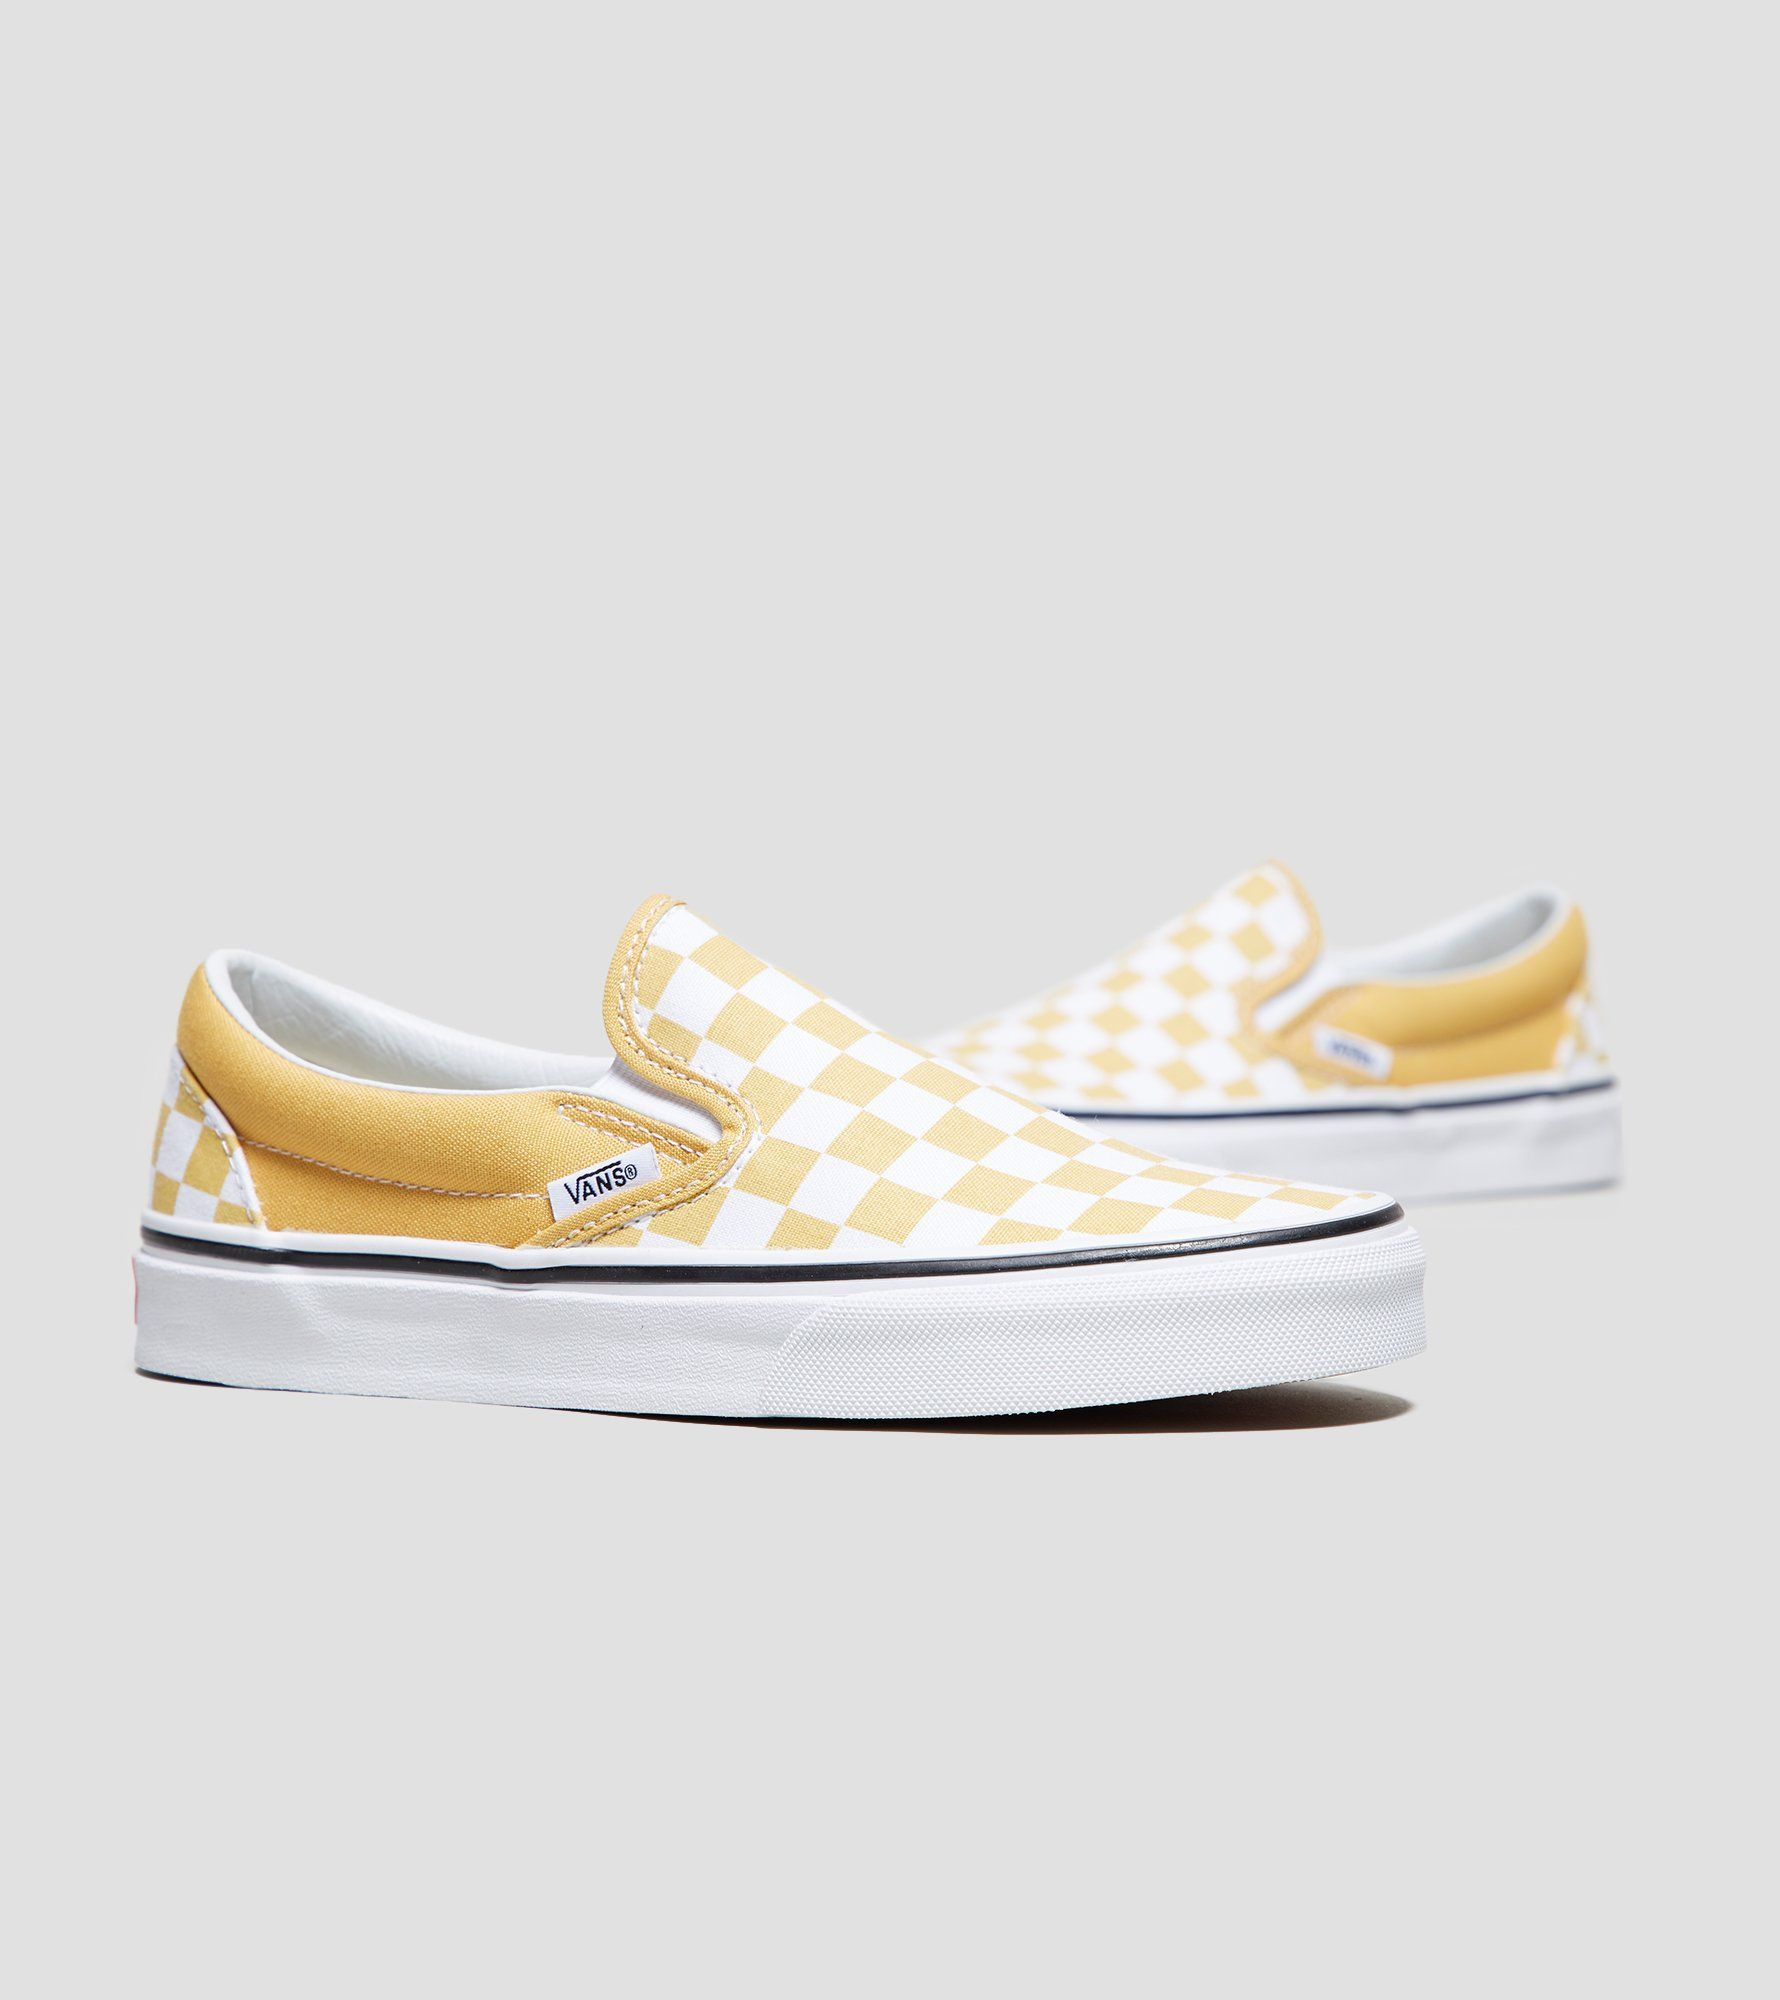 Vans Slip On Checkboard Women's